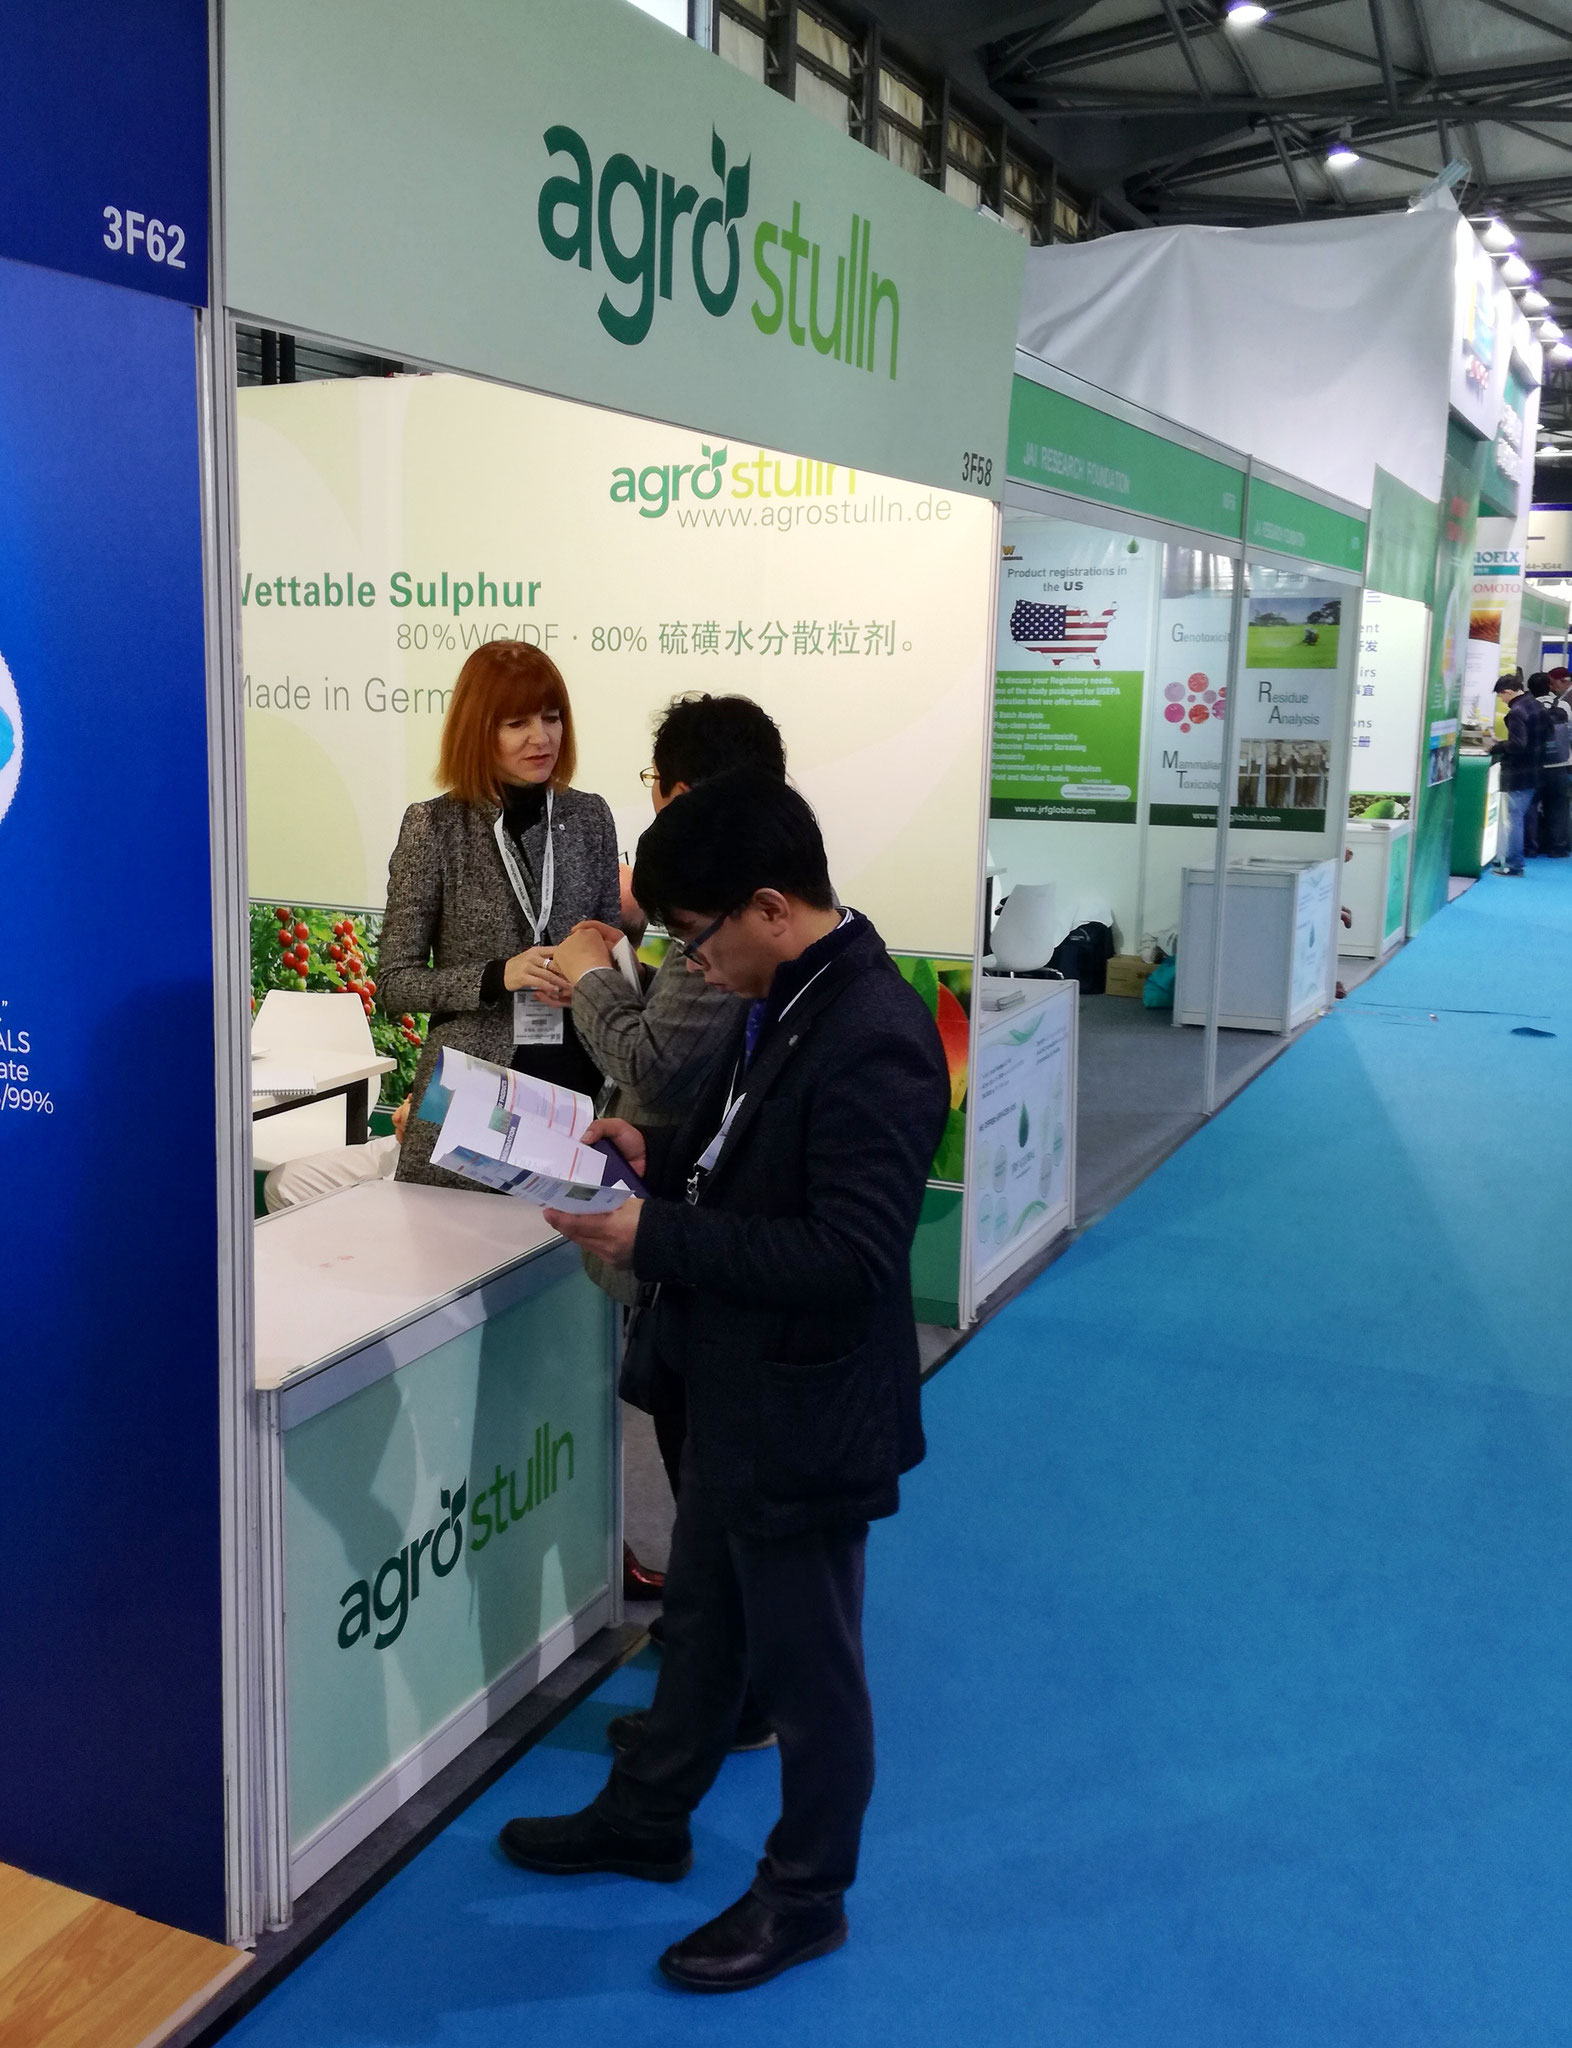 agrostulln booth at the CAC exhibition in Shanghai